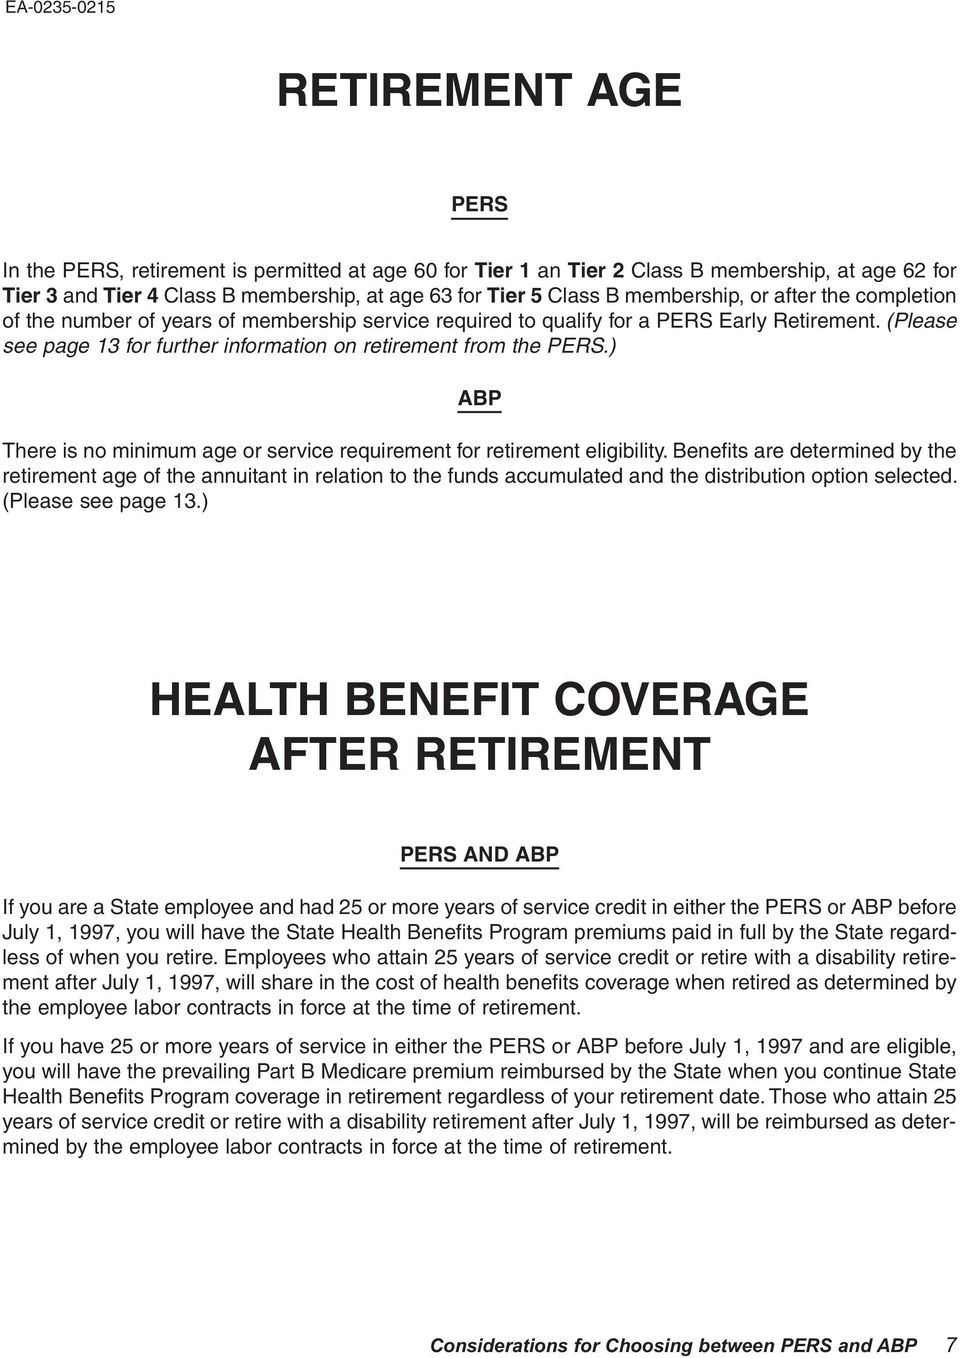 (Please see page 13 for further information on retirement from the PERS.) There is no minimum age or service requirement for retirement eligibility.